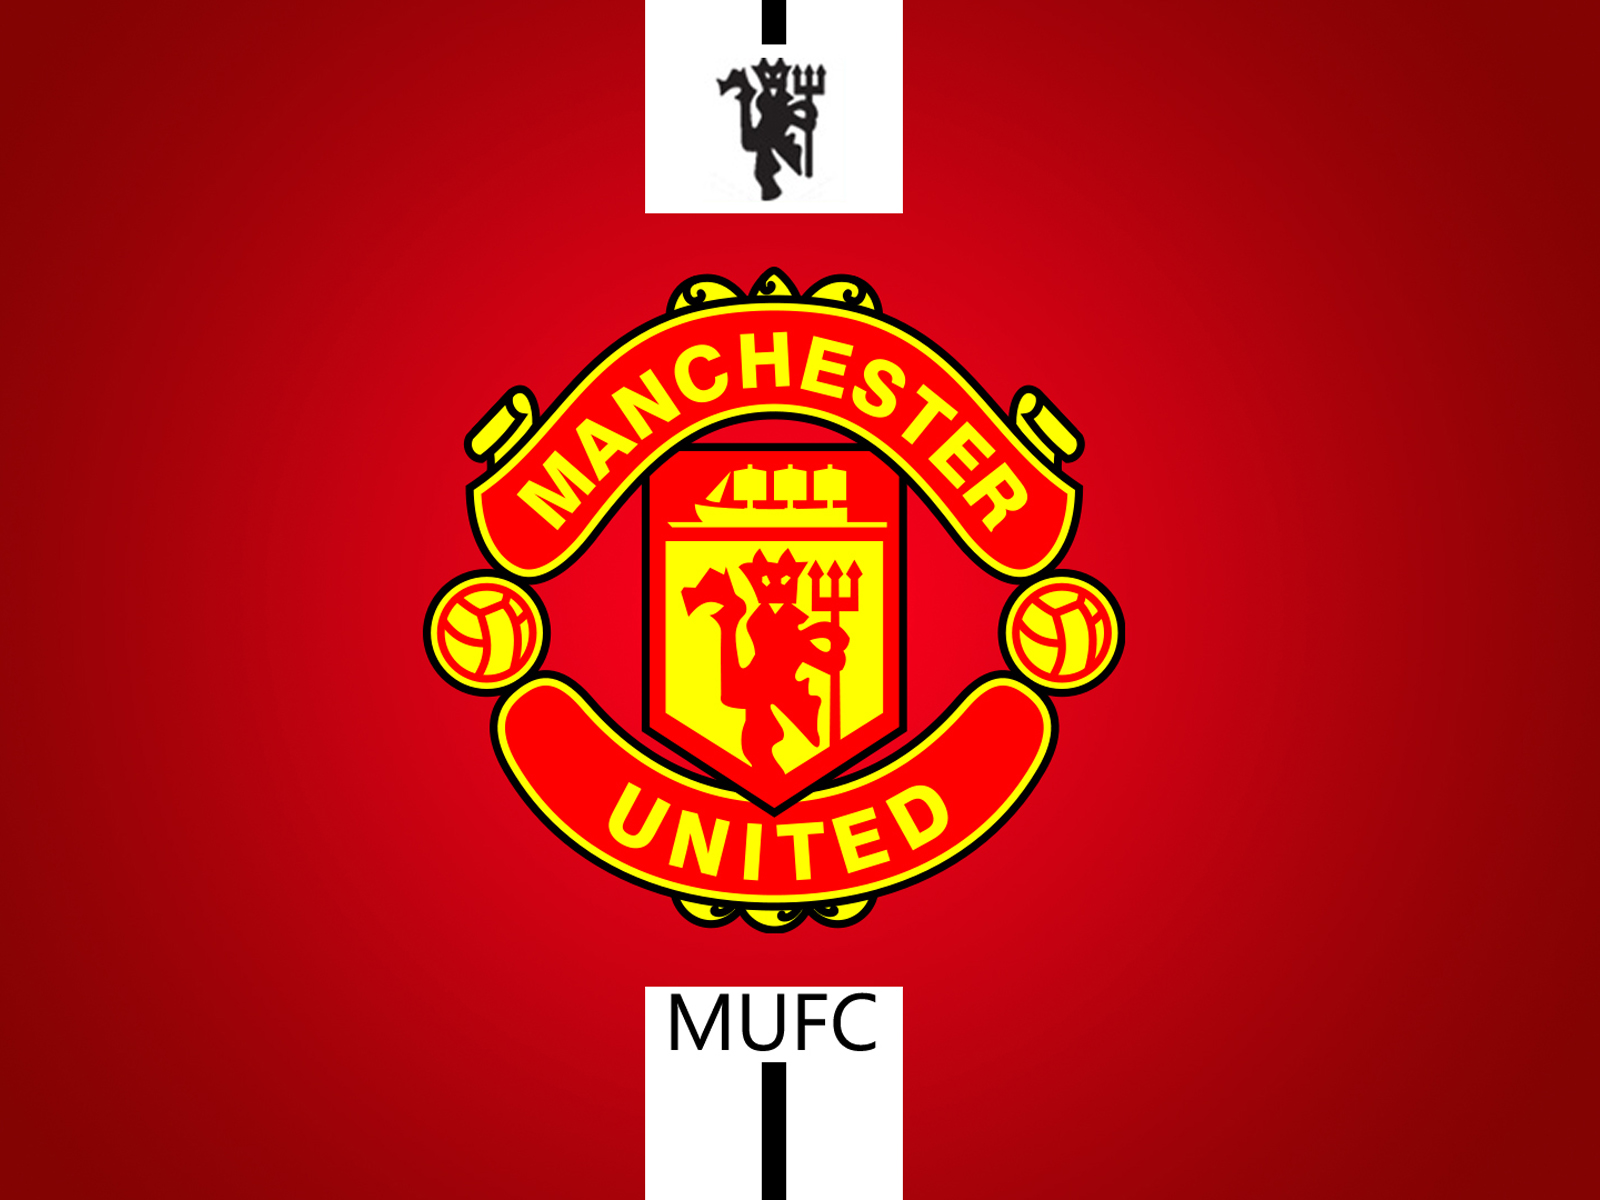 50+ Manchester United HD Wallpapers on WallpaperSafari